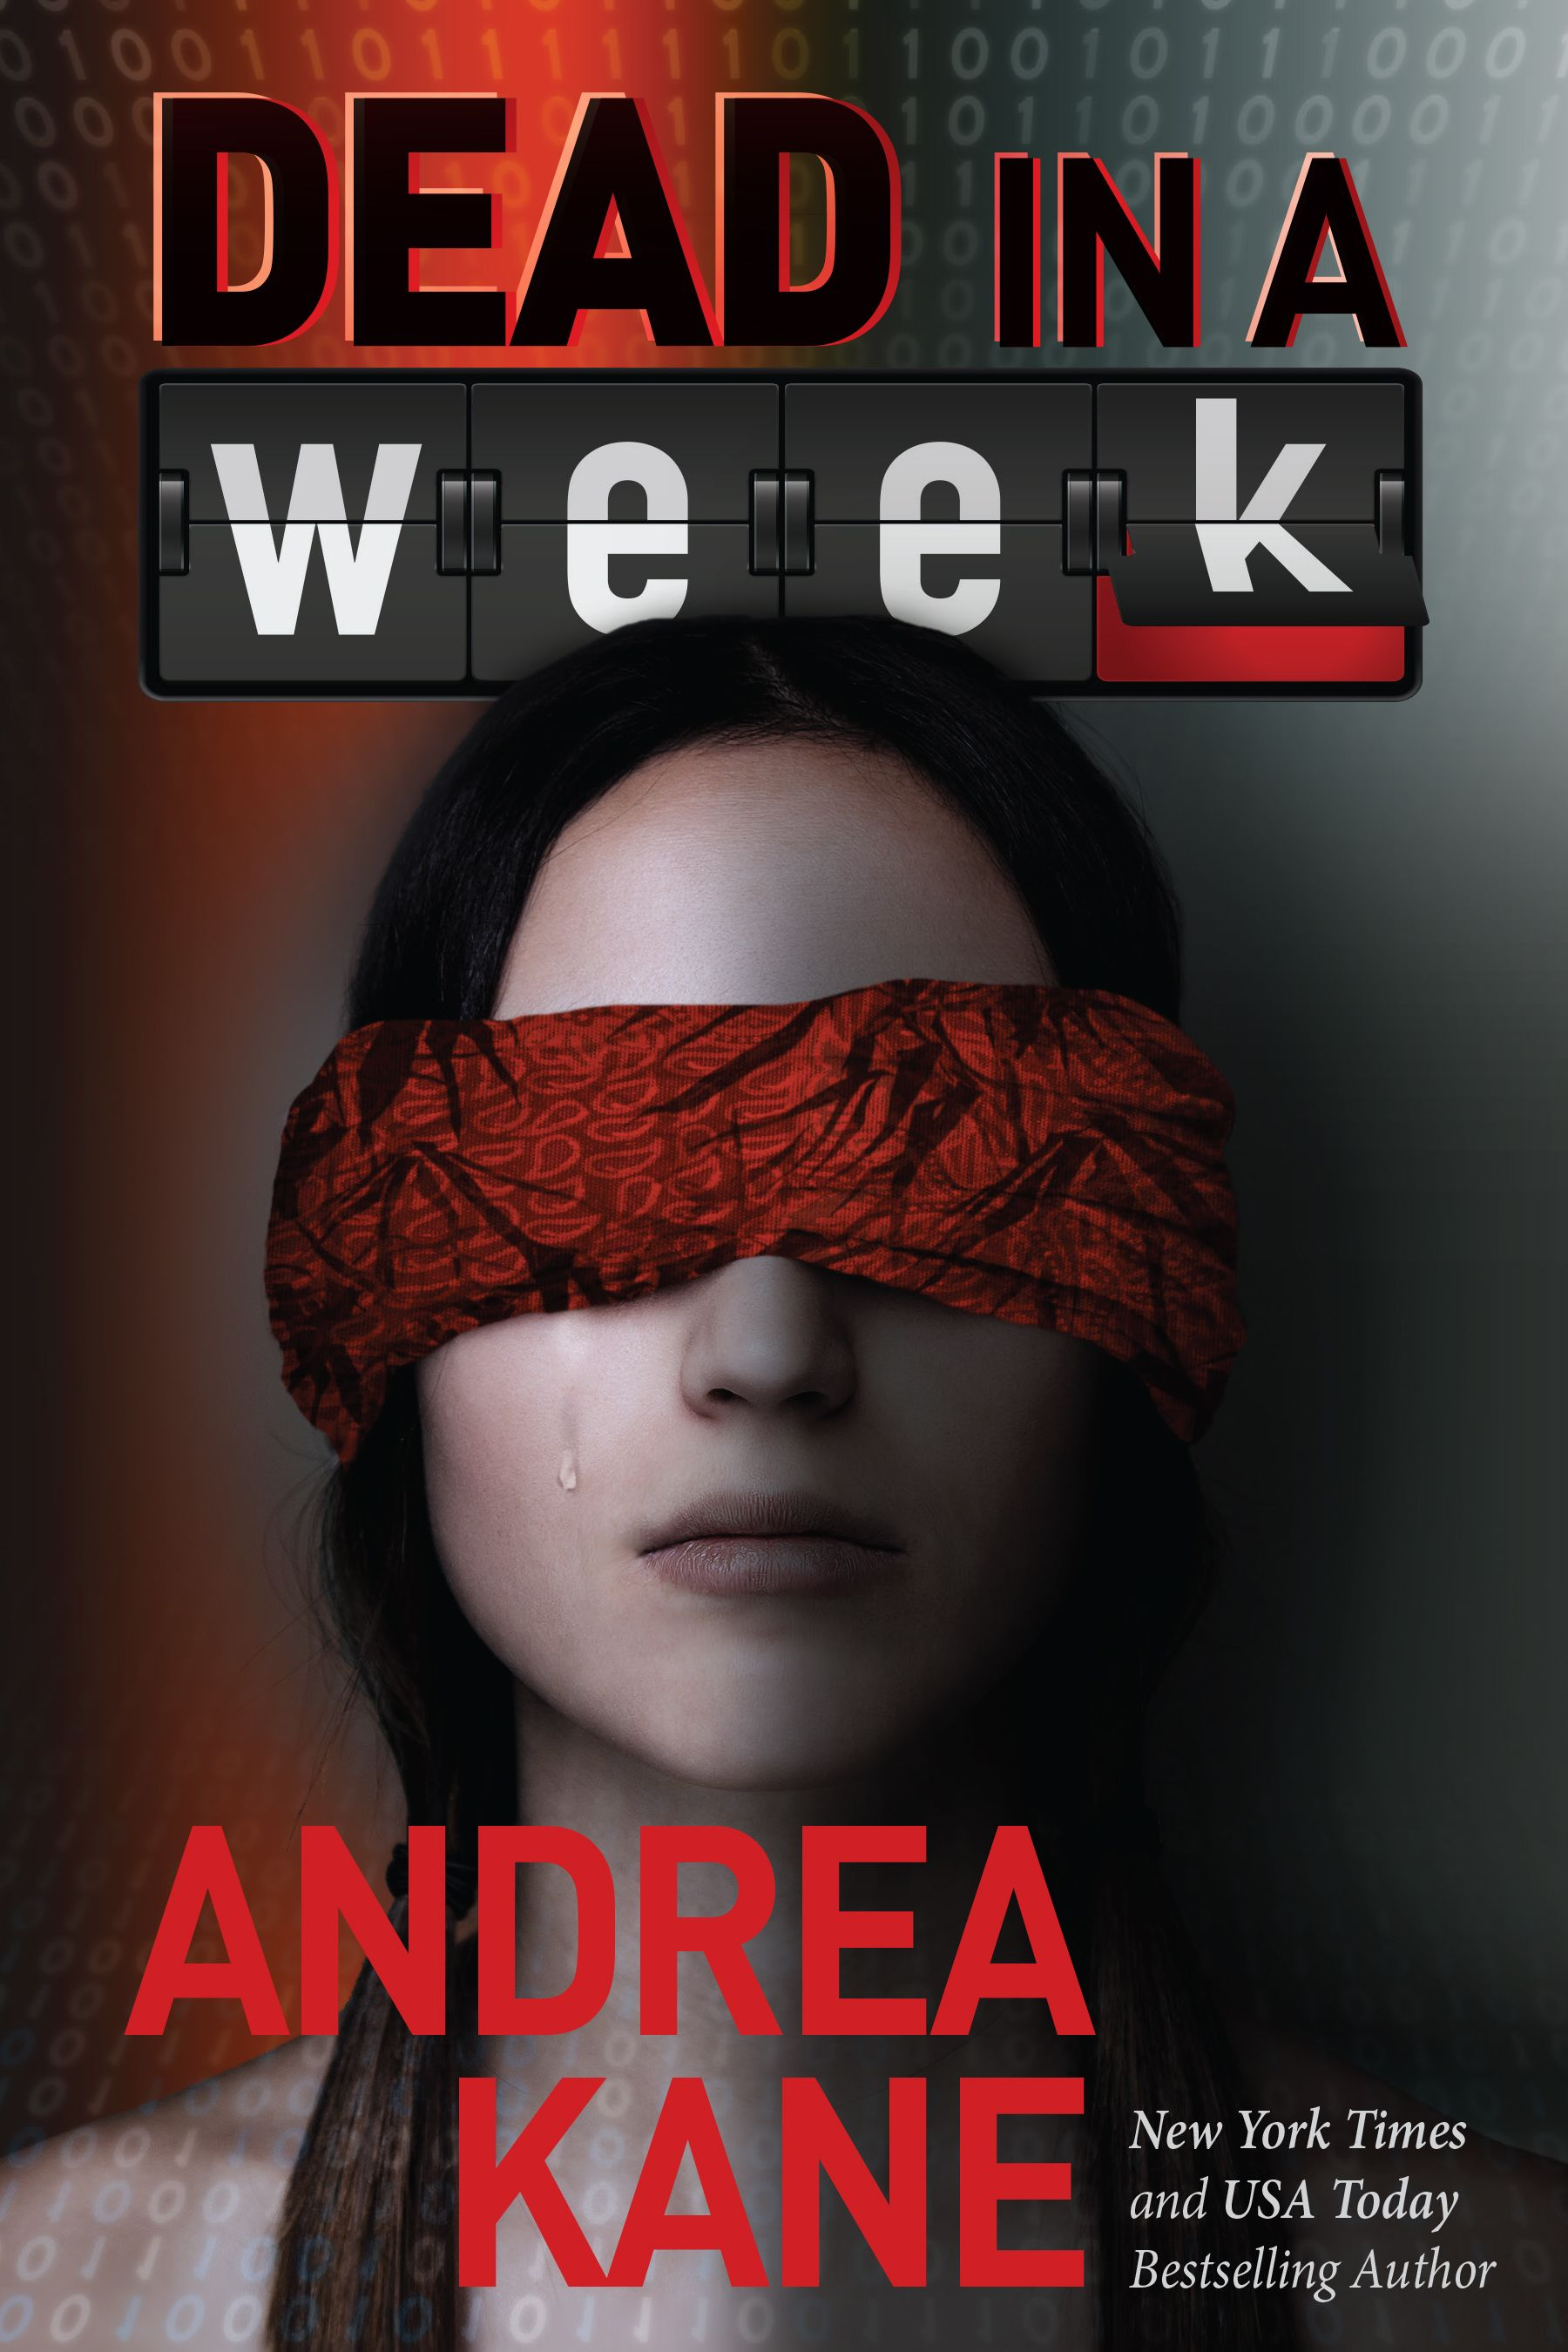 Dead In A Week by Andrea Kane